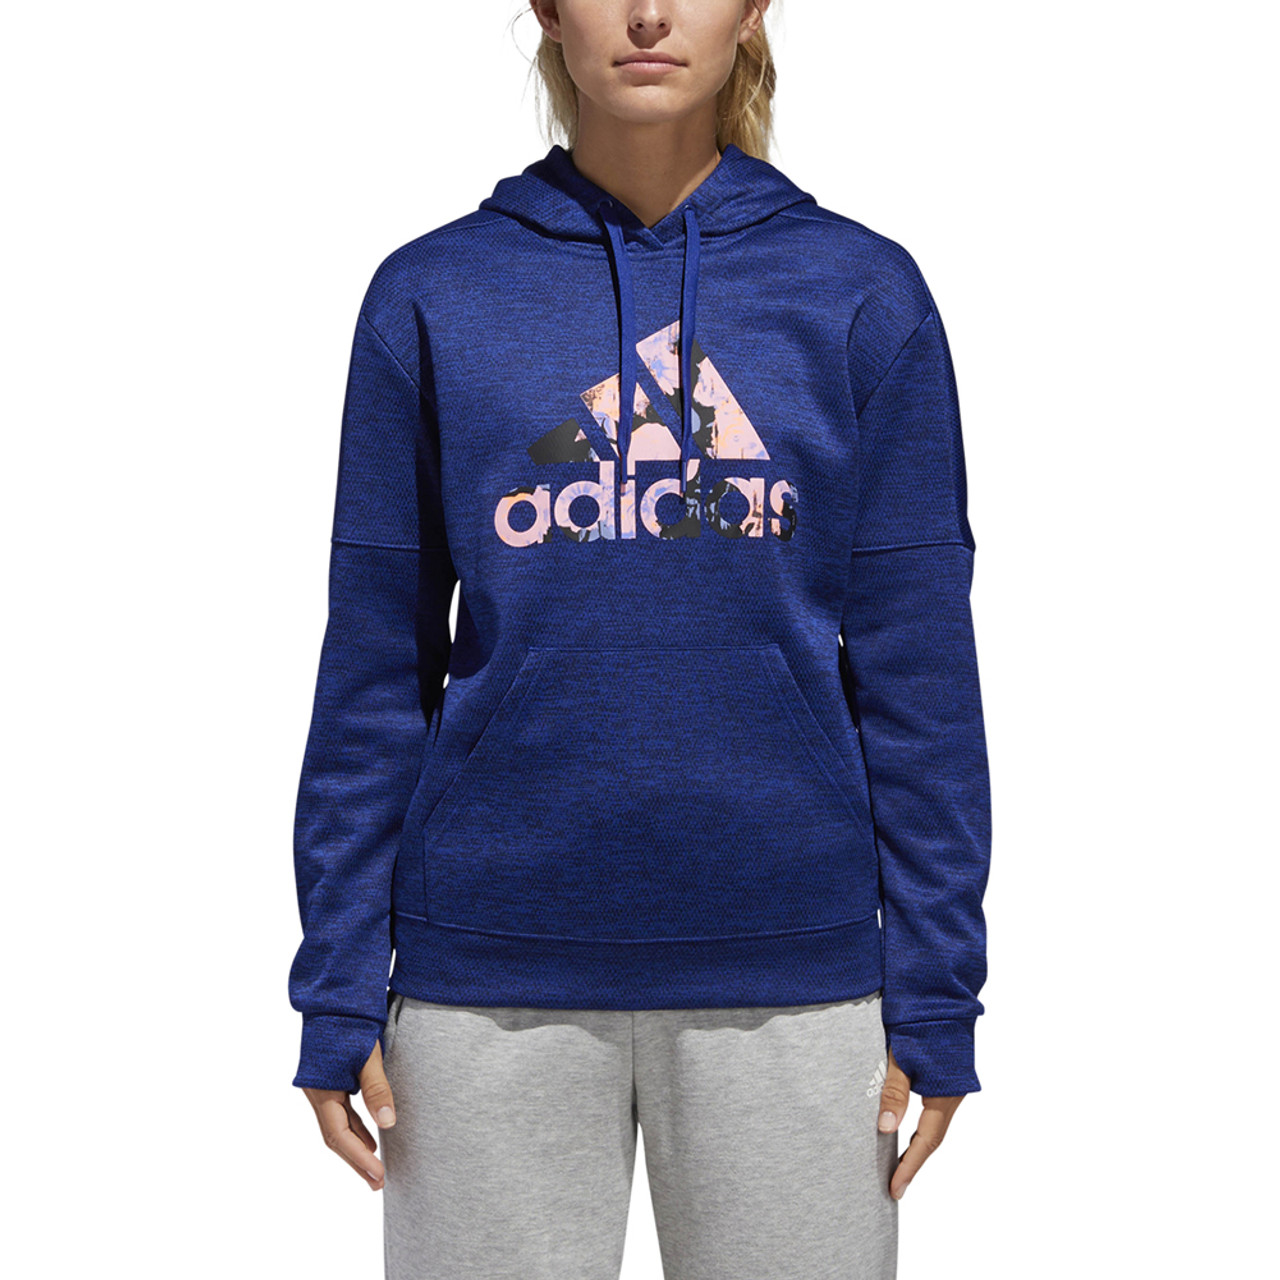 official images website for discount outlet Adidas Women's Floral Badge Of Sport Hoodie Mystery Ink